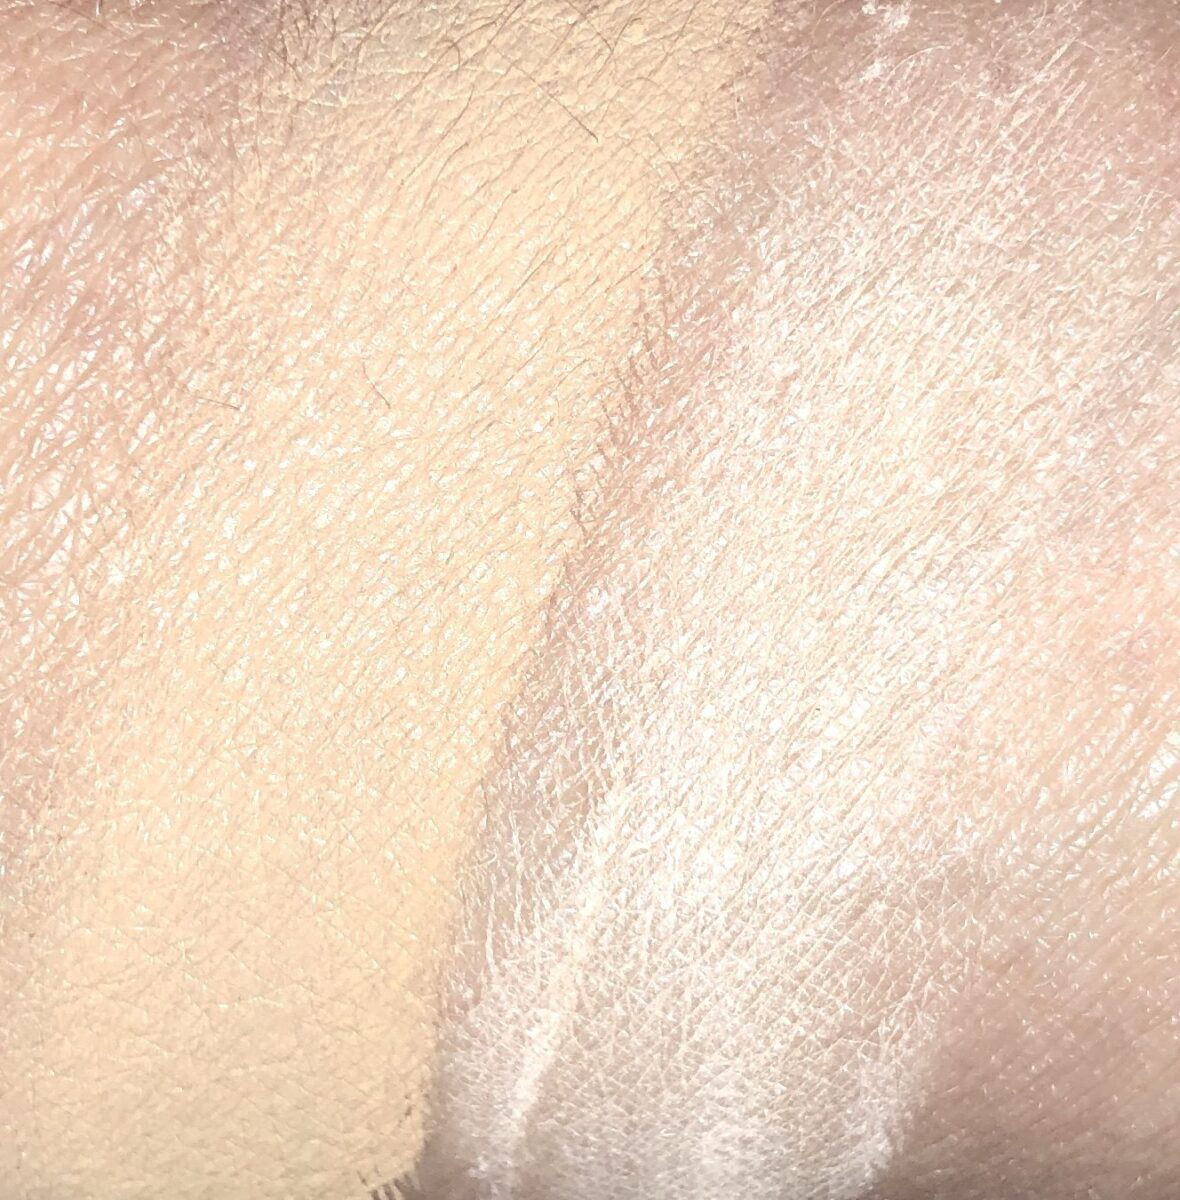 SWATCH M17-CONCEALER ON LEFT, SWATCH MEDIUM SETTING POWDER ON RIGHT